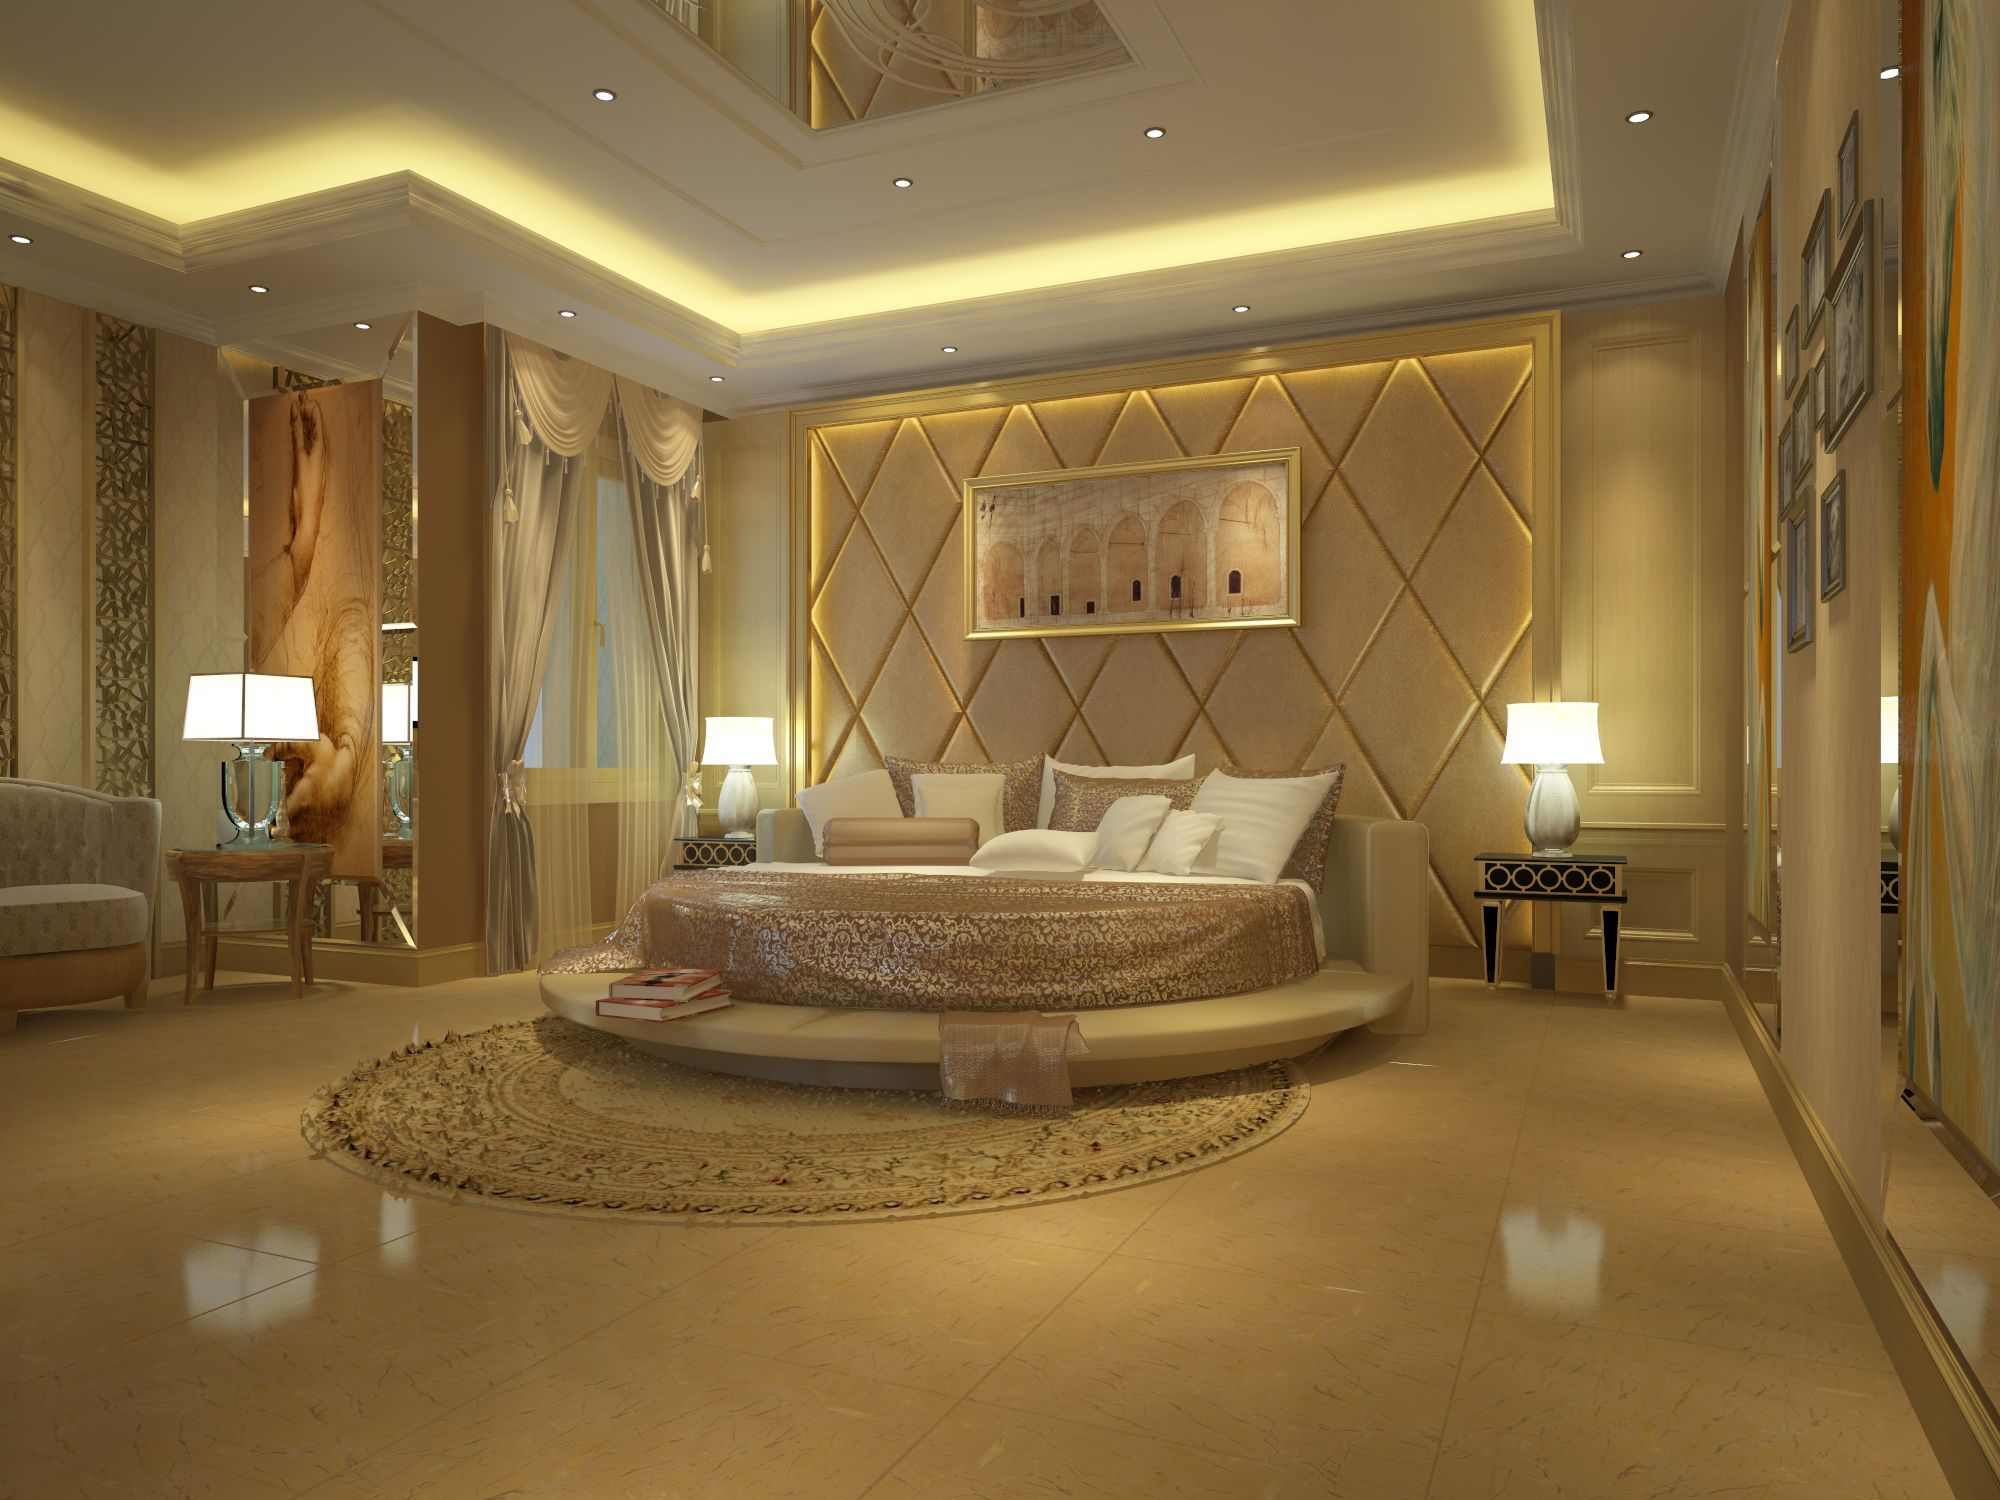 Master bedroom designs ideas - 30 Romantic Master Bedroom Designs